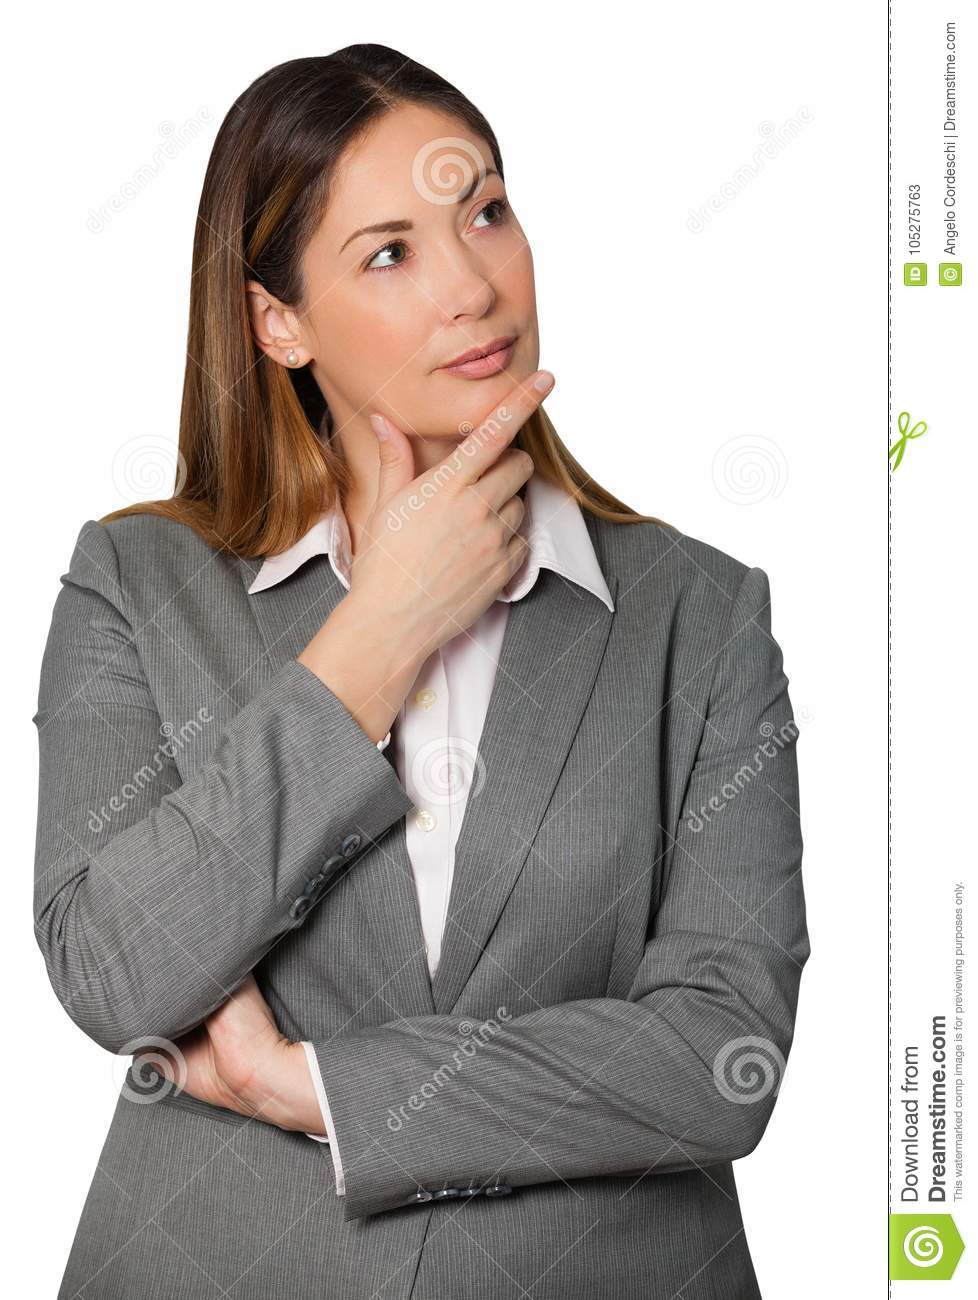 Thinking business woman holding hand under chin and arms folded